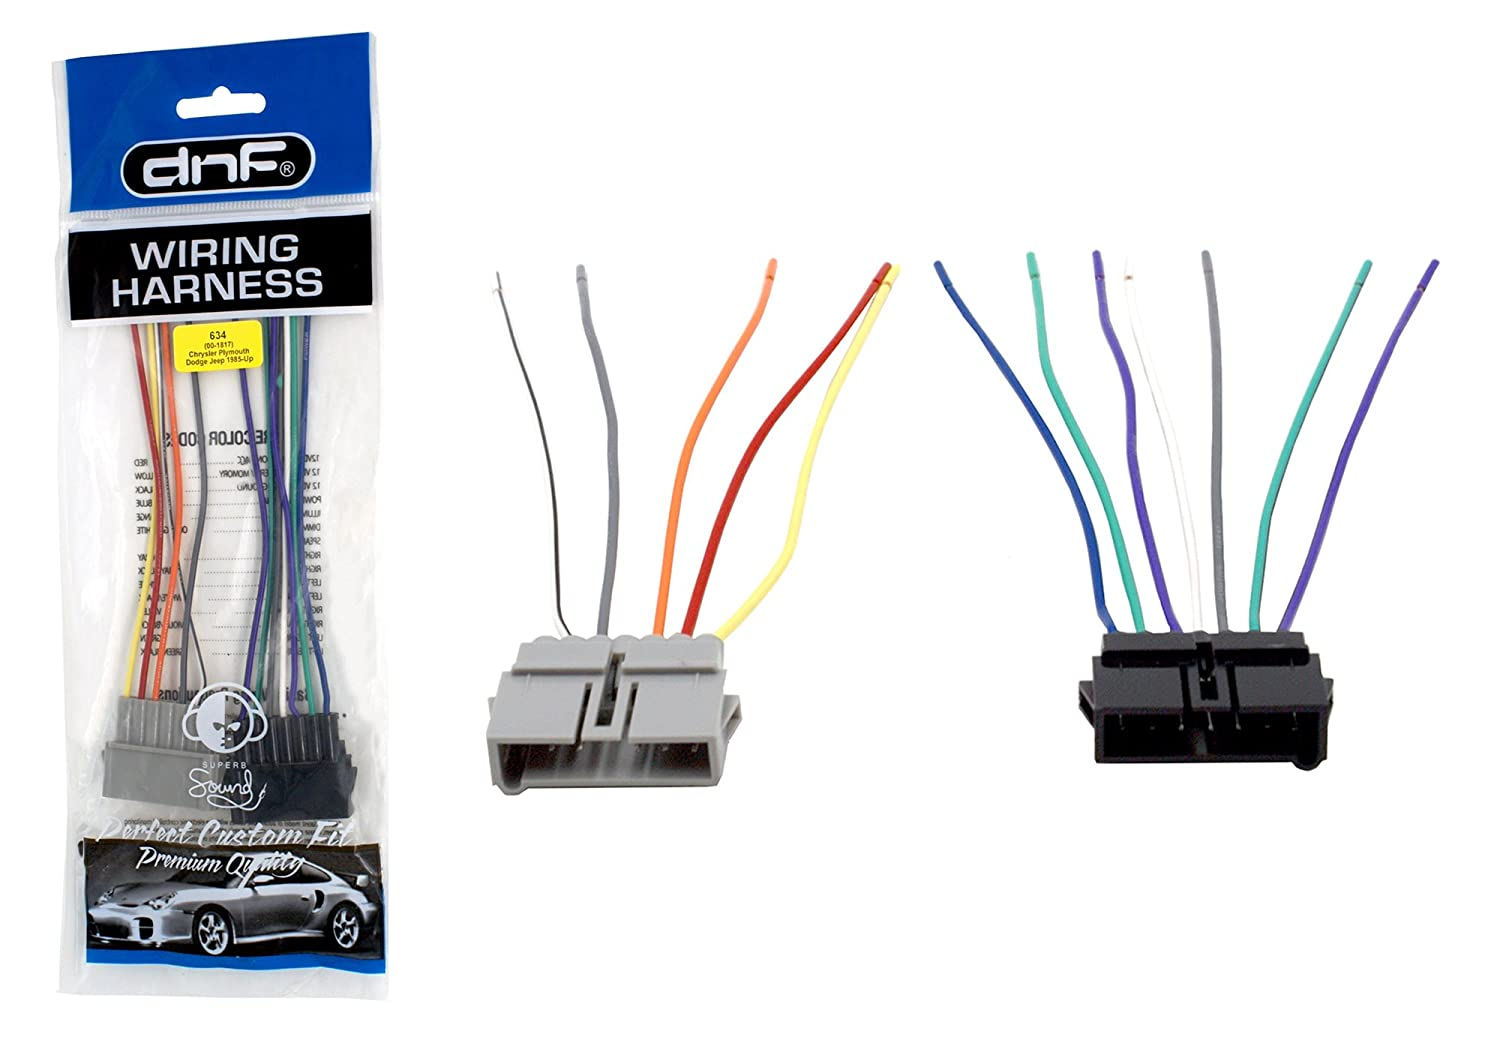 Dnf Wiring Harness For Aftermarket Radios Stereos Chrysler Automotive Select Dodge Jeep Vehicles 70 1817 100 Copper Wires